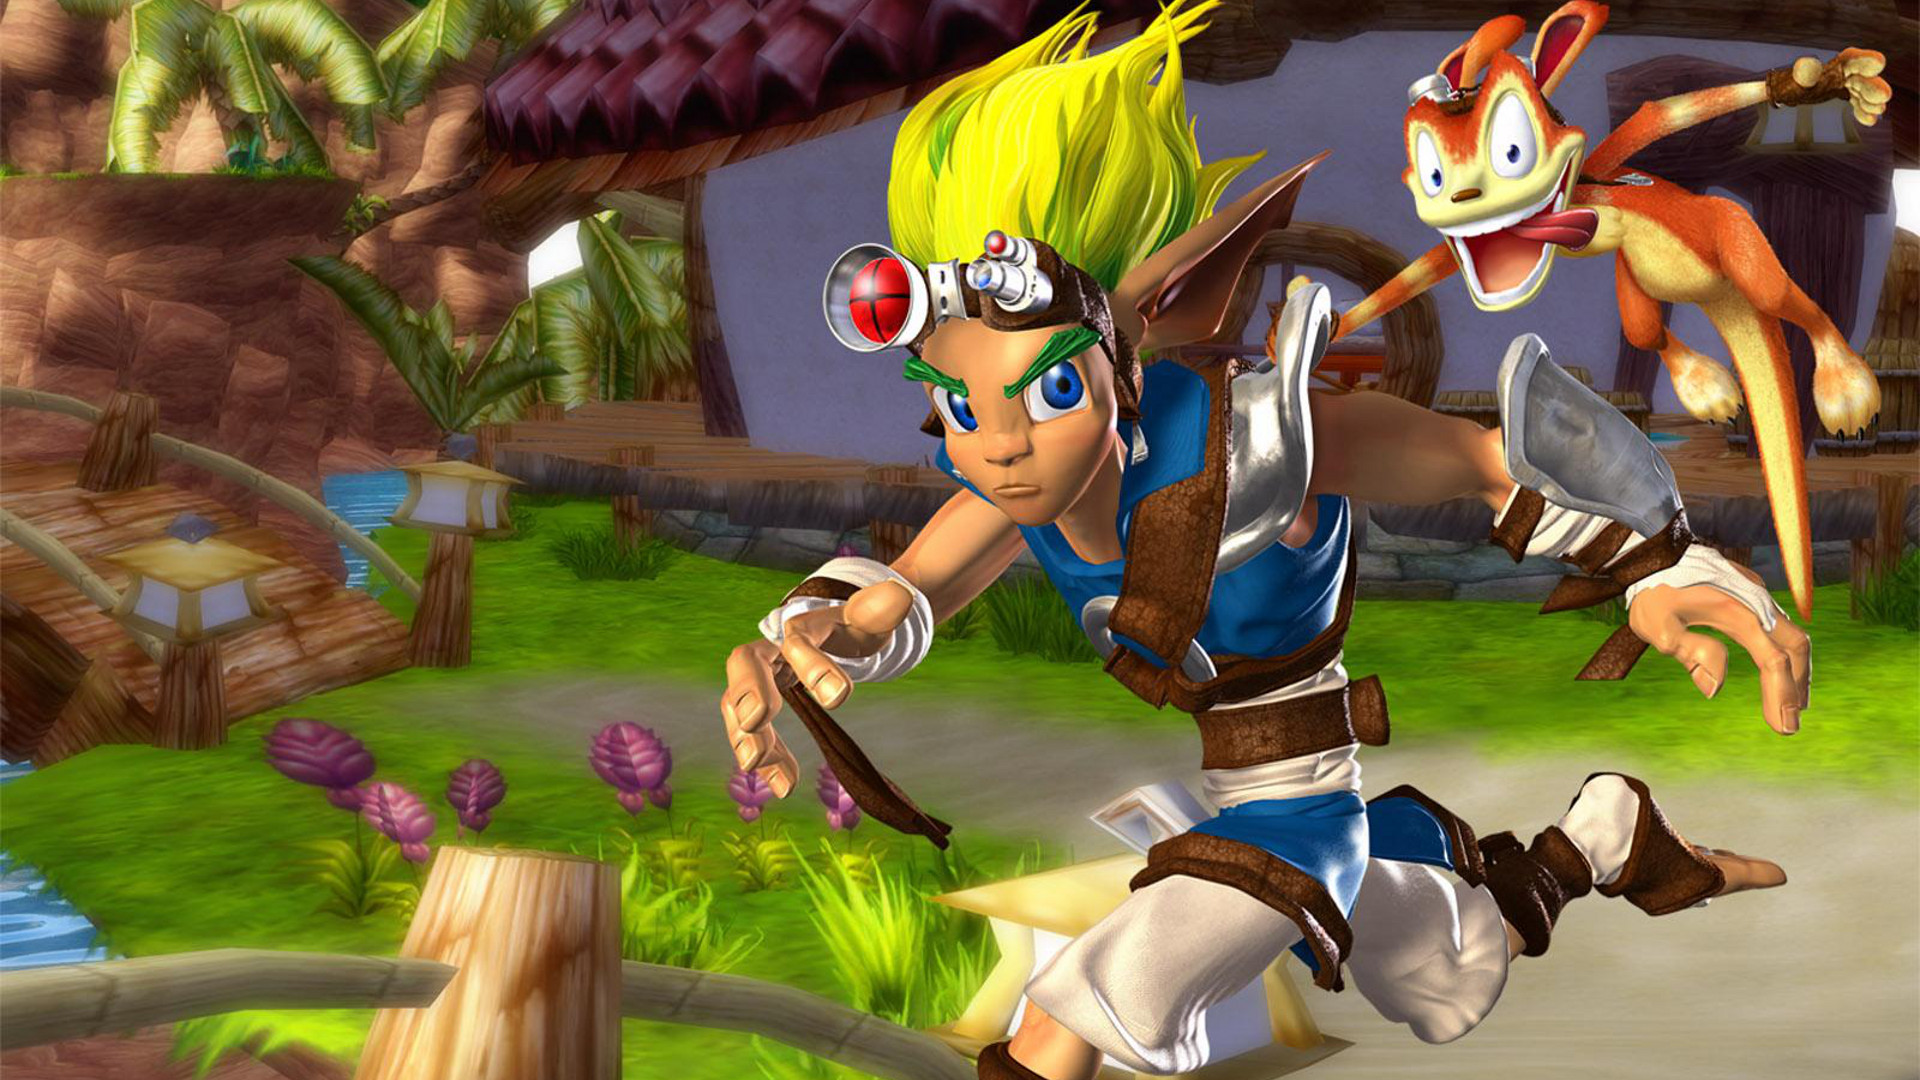 Jak And Daxter Wallpaper 12835803: Jak And Daxter: The Precursor Legacy HD Wallpaper